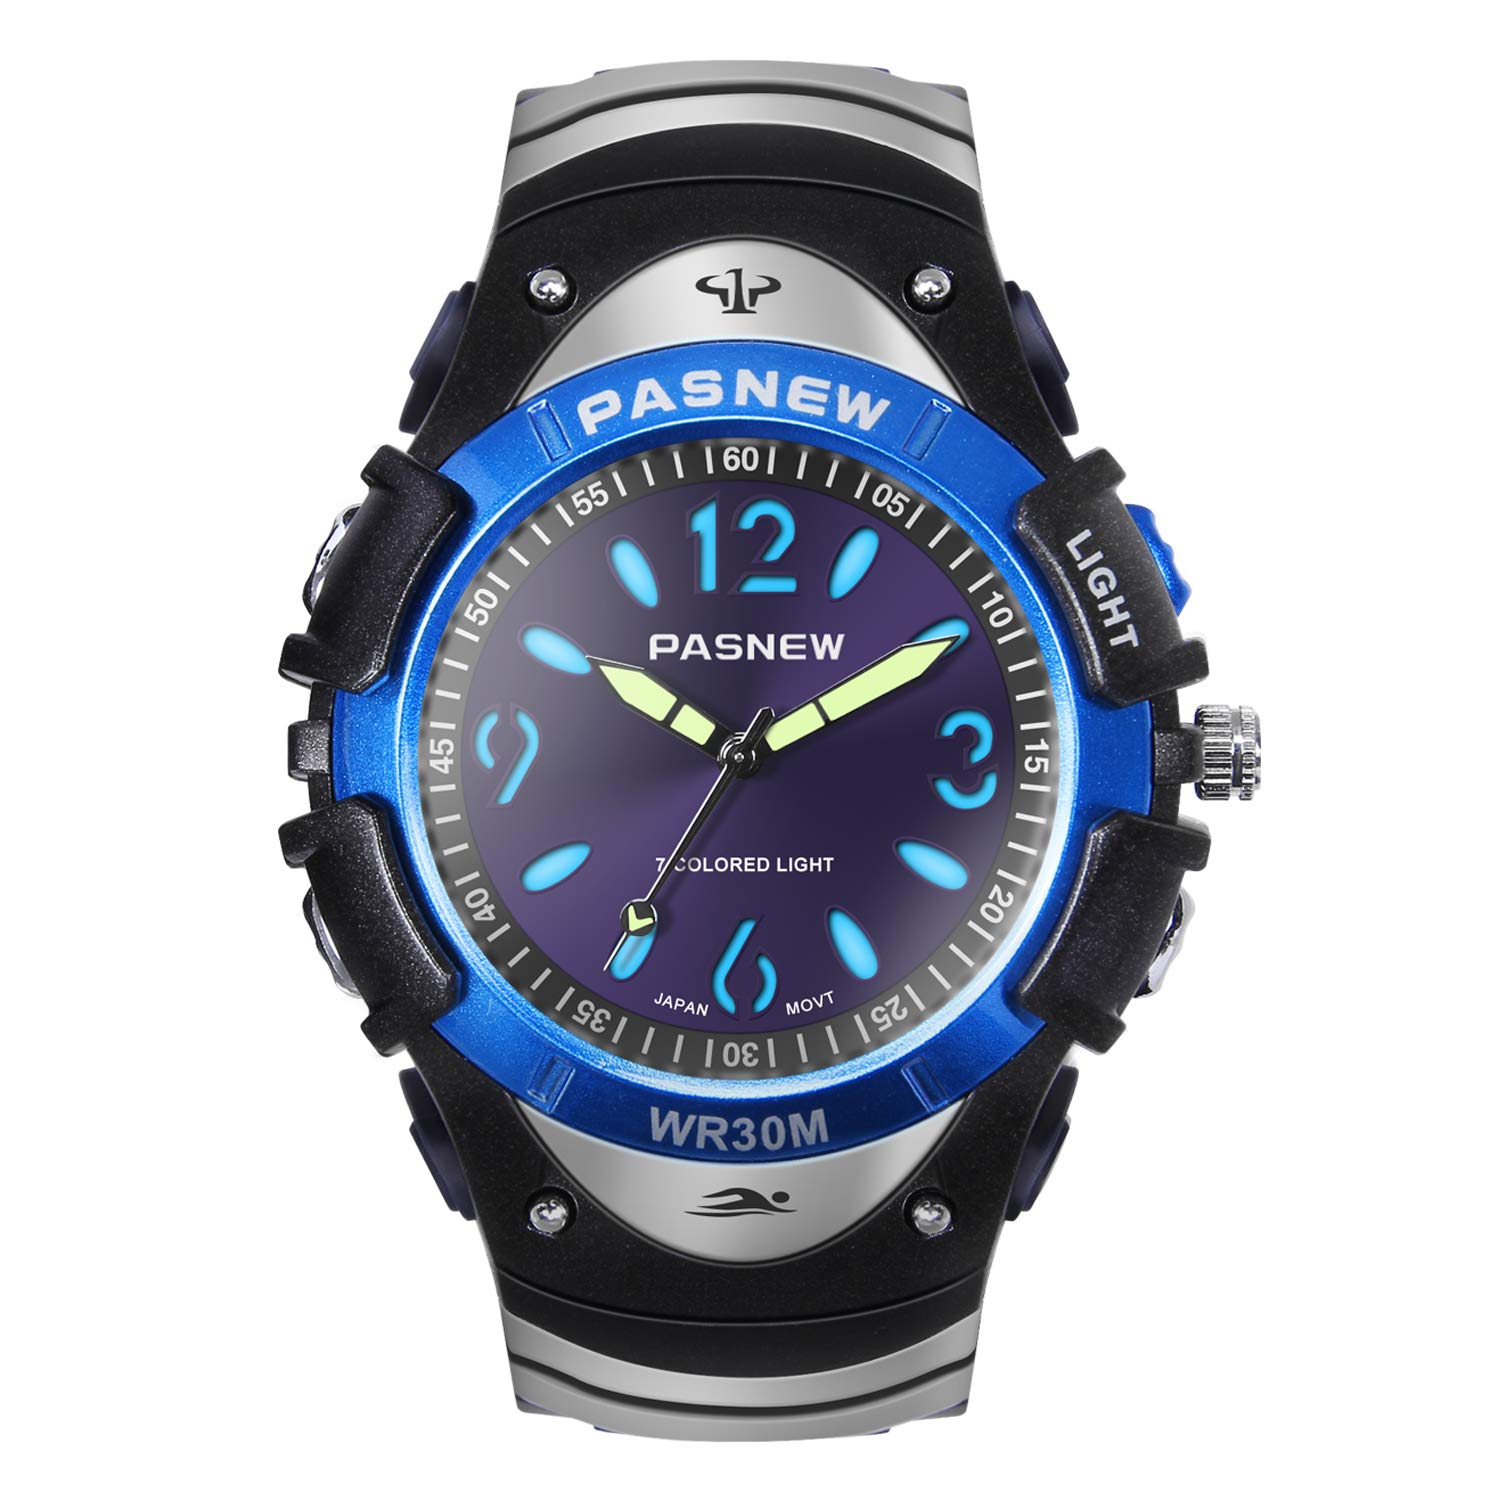 HIwatch Boys Watches Classic Quartz Waterproof Wrist Watch Sport Analog Watch with Multi Coloured Lights for Youth High School Students, Blue